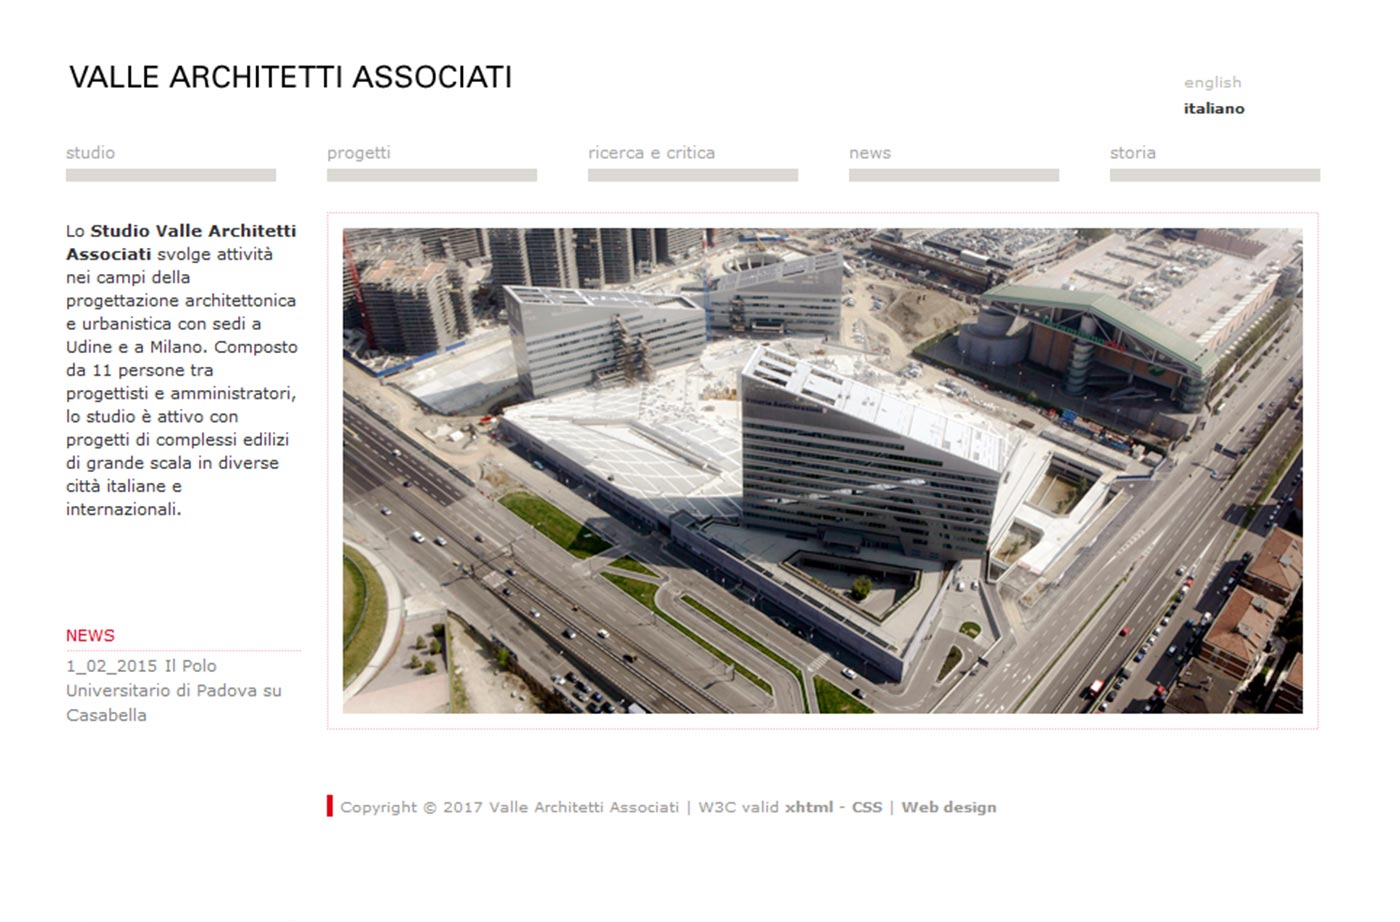 Valle Architetti Associati website